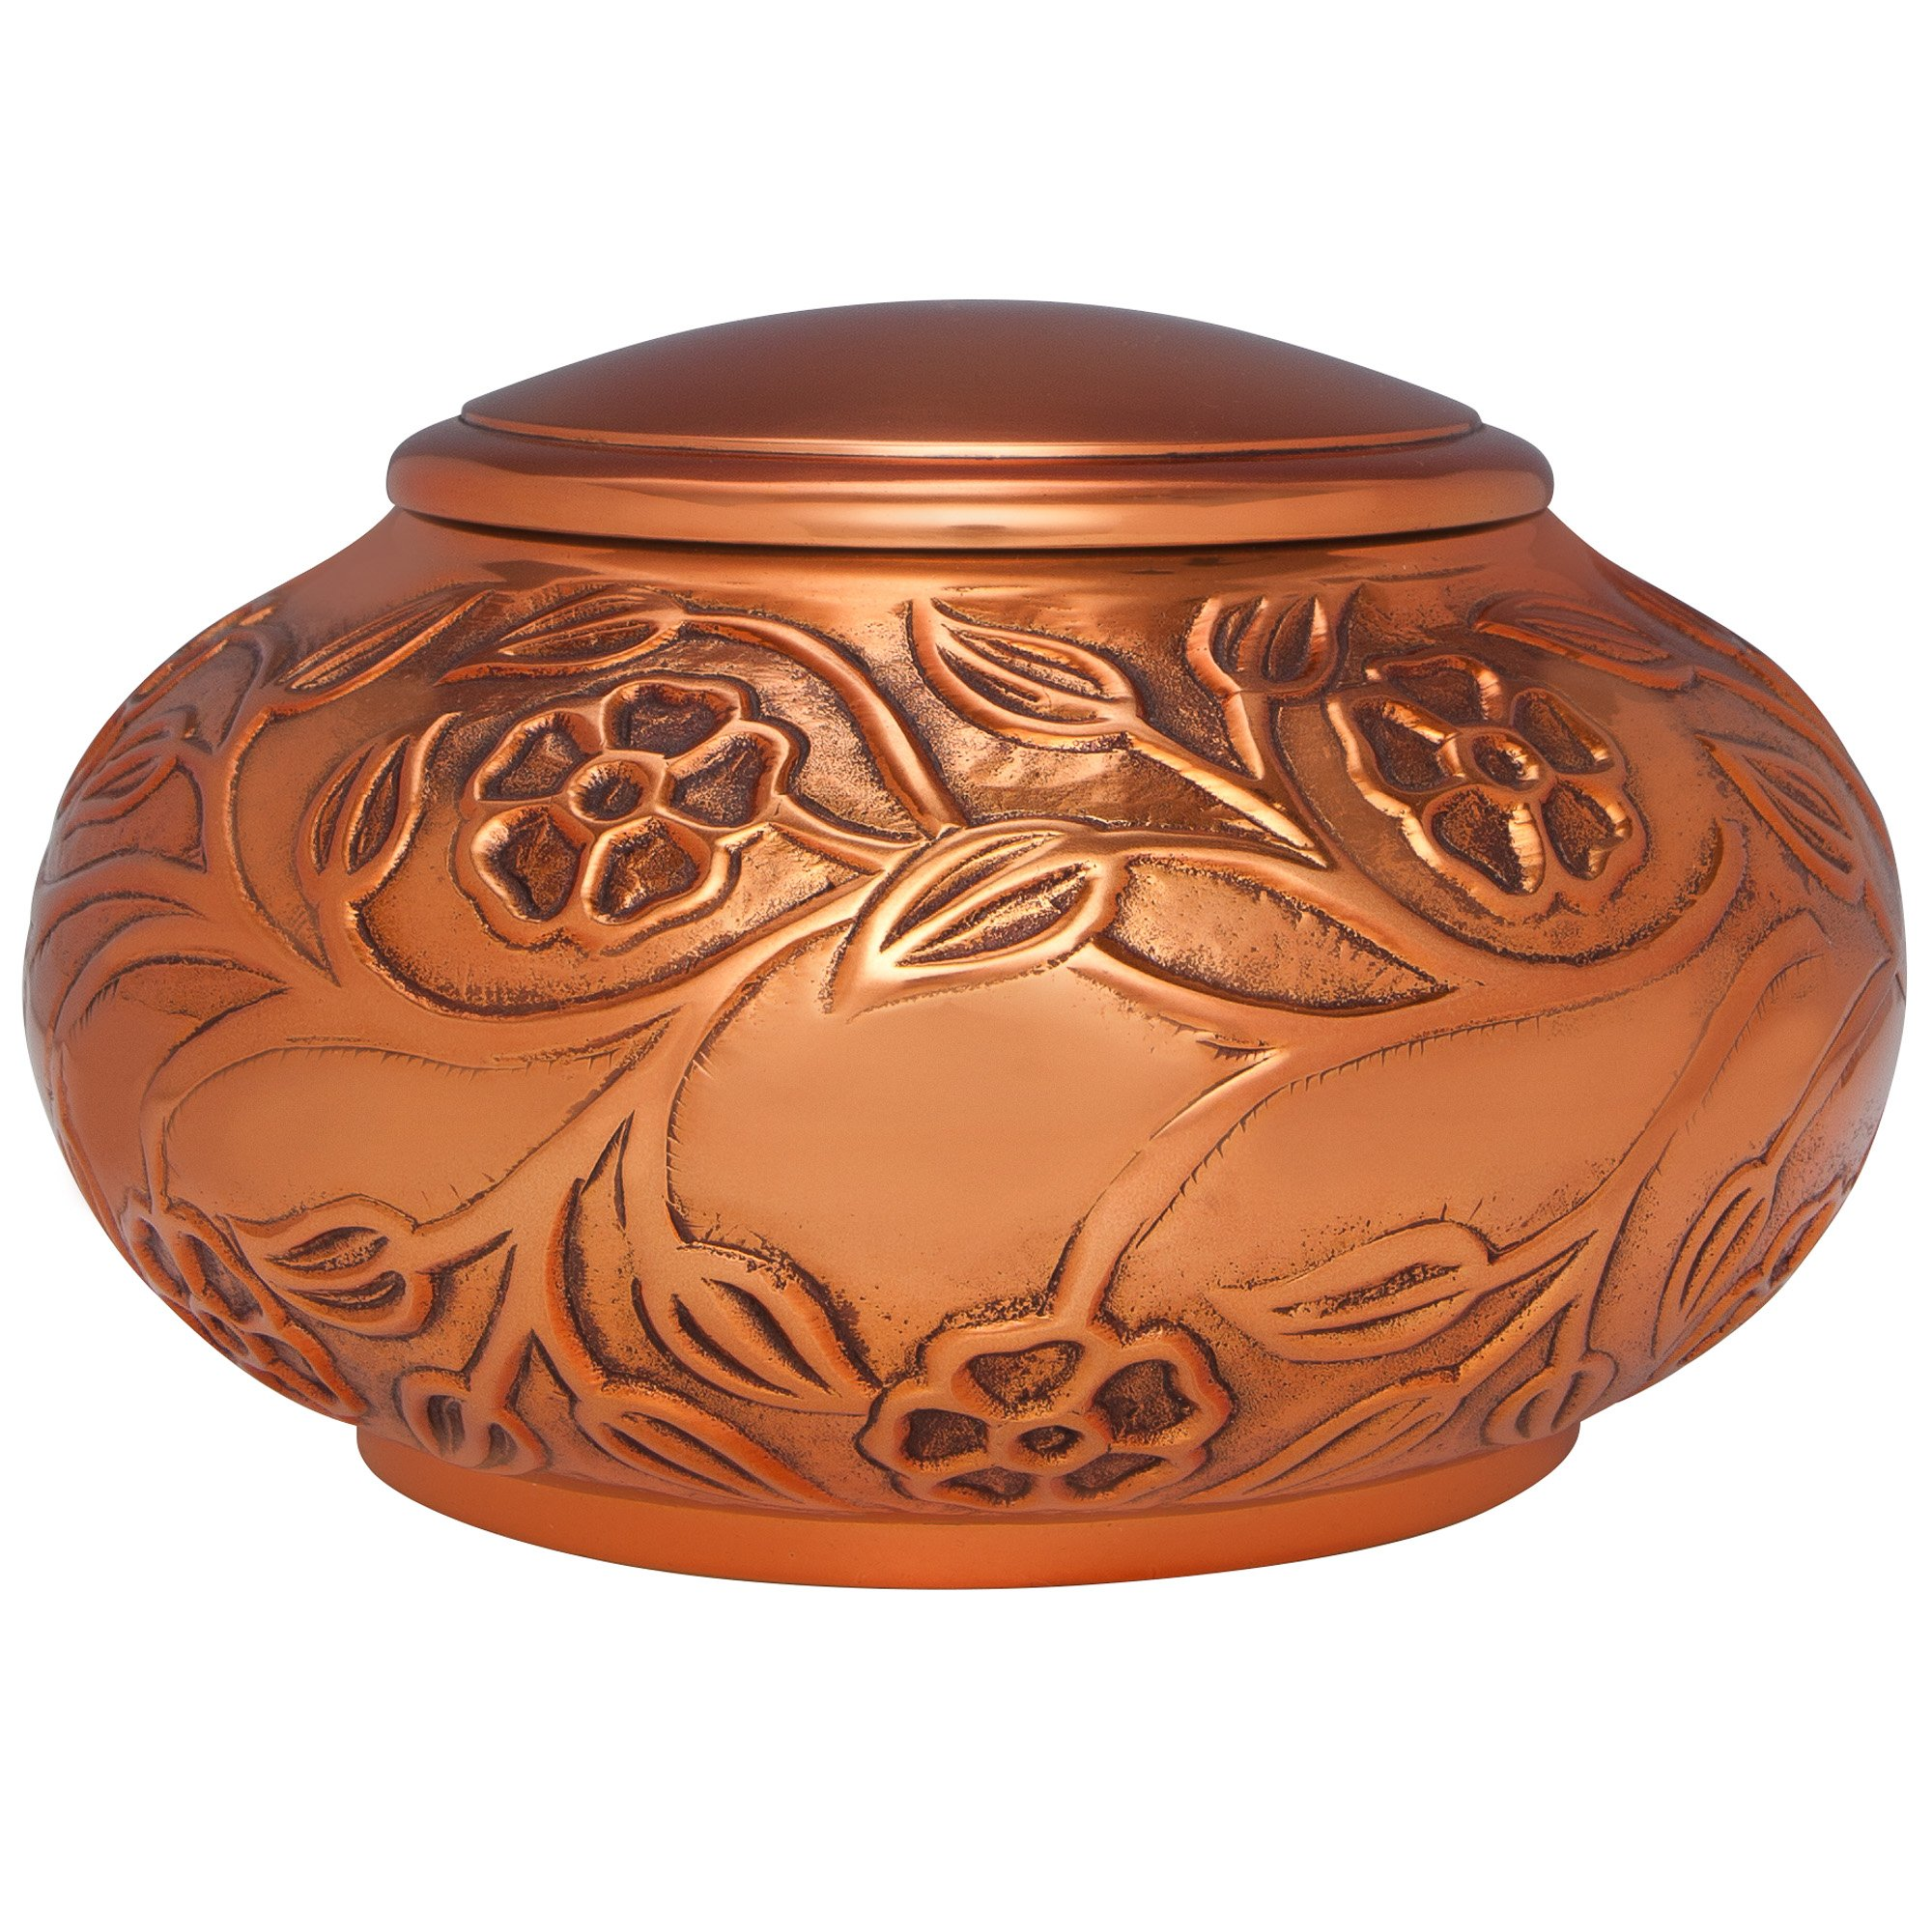 Copper Funeral Urn by Liliane Memorials - Cremation Urn for Human Ashes - Hand Made in Brass - Suitable for Cemetery Burial or Niche - Large Size fits remains of Adults up to 110 lbs